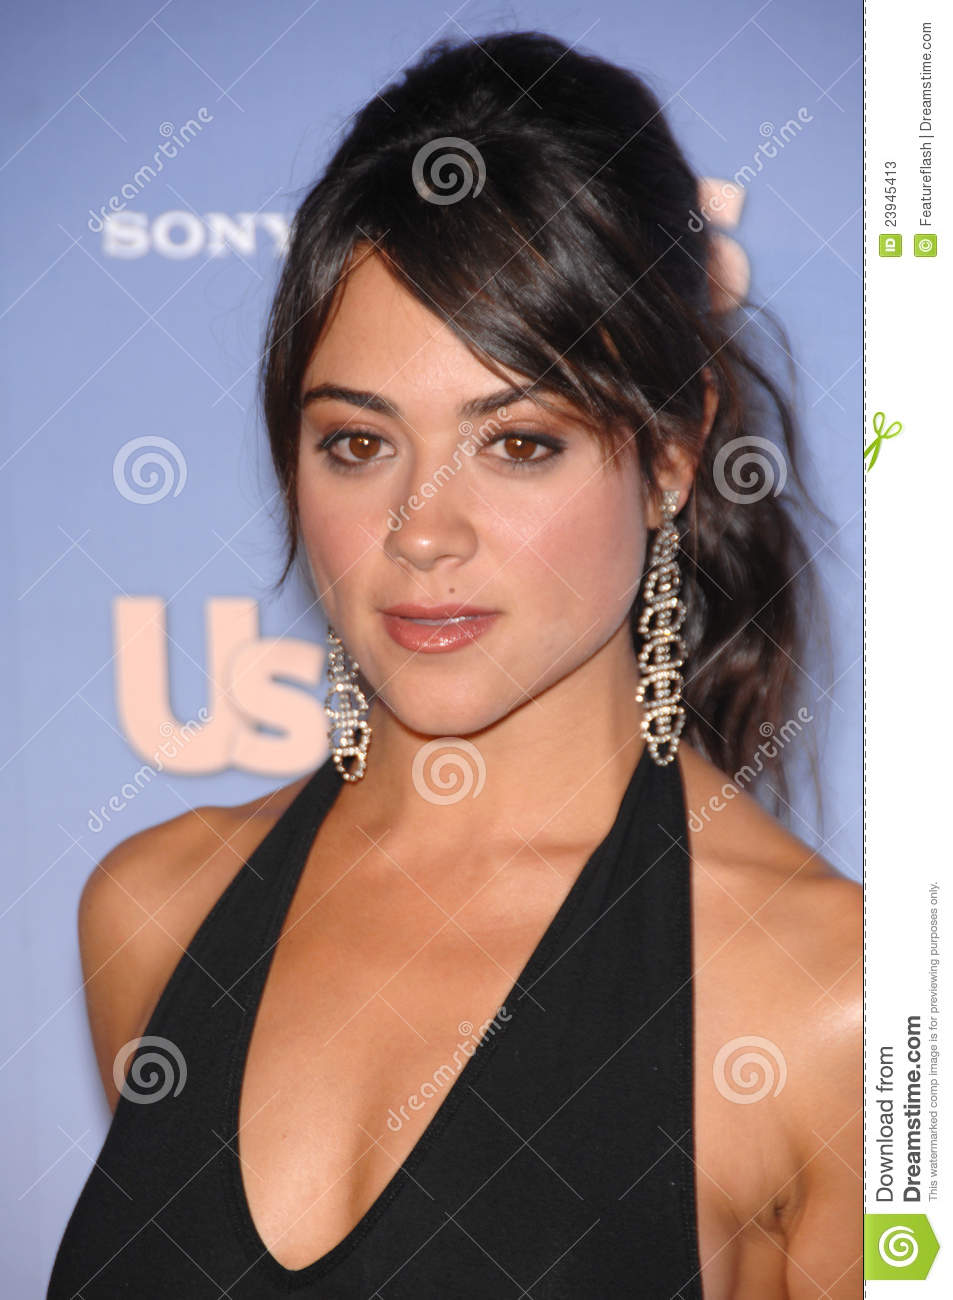 camille guaty wiki